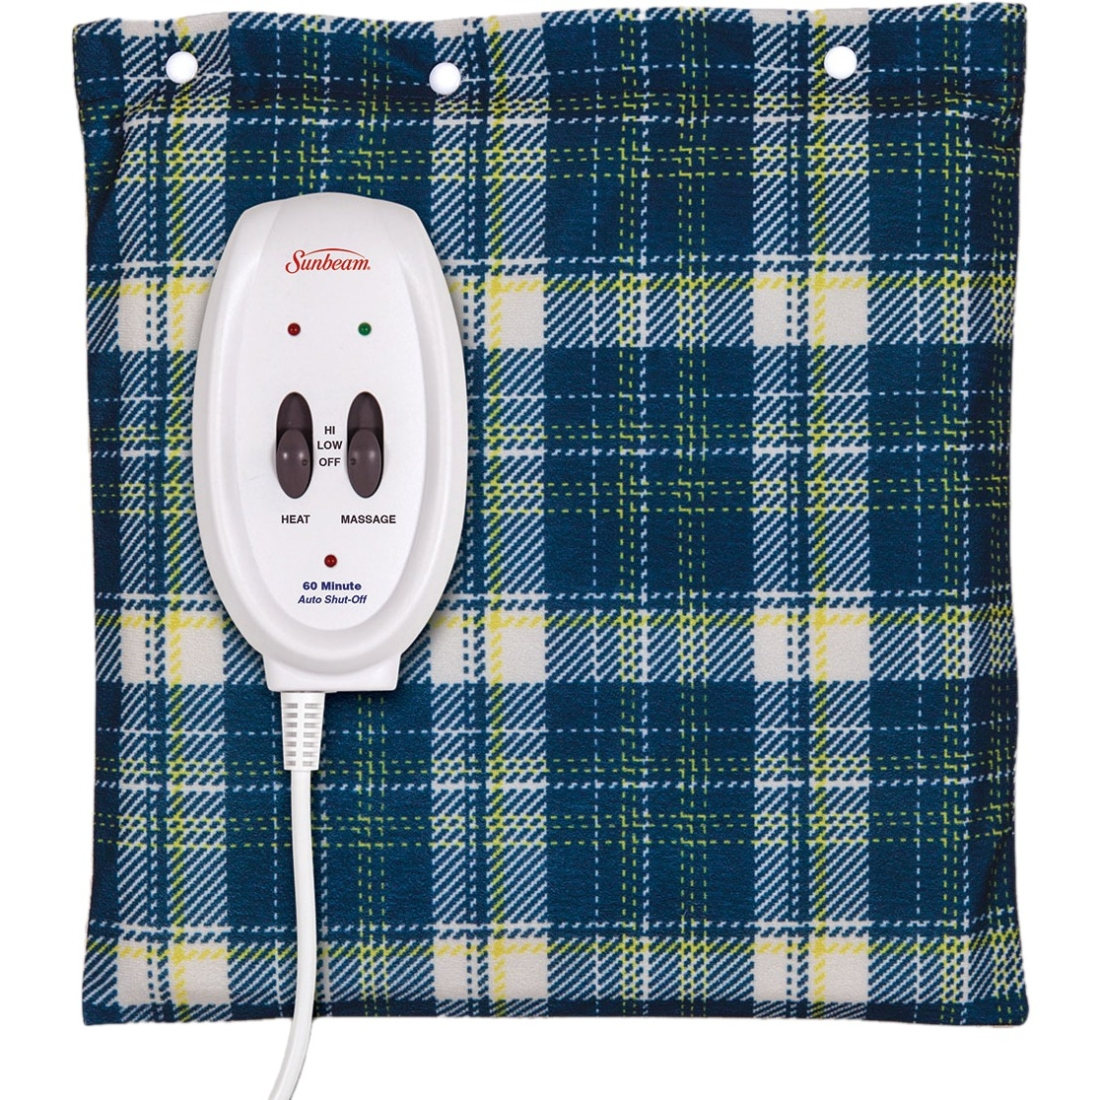 Sunbeam Sunbeam Heating Pad, 1 ea - Walmart.com